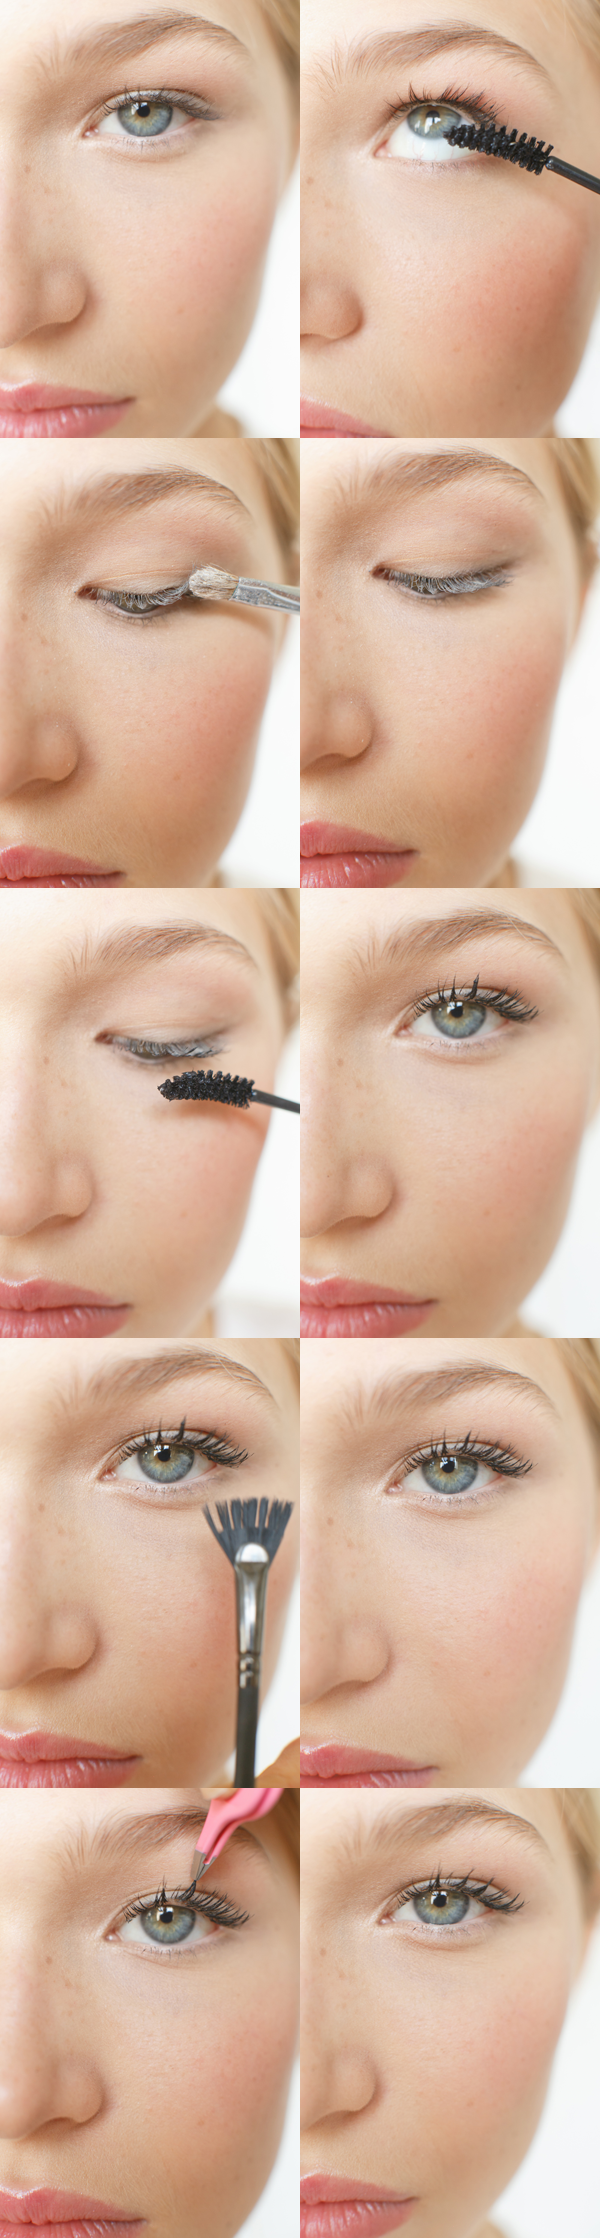 diy-fake-thicker-lashes-with-mascara-tutorial